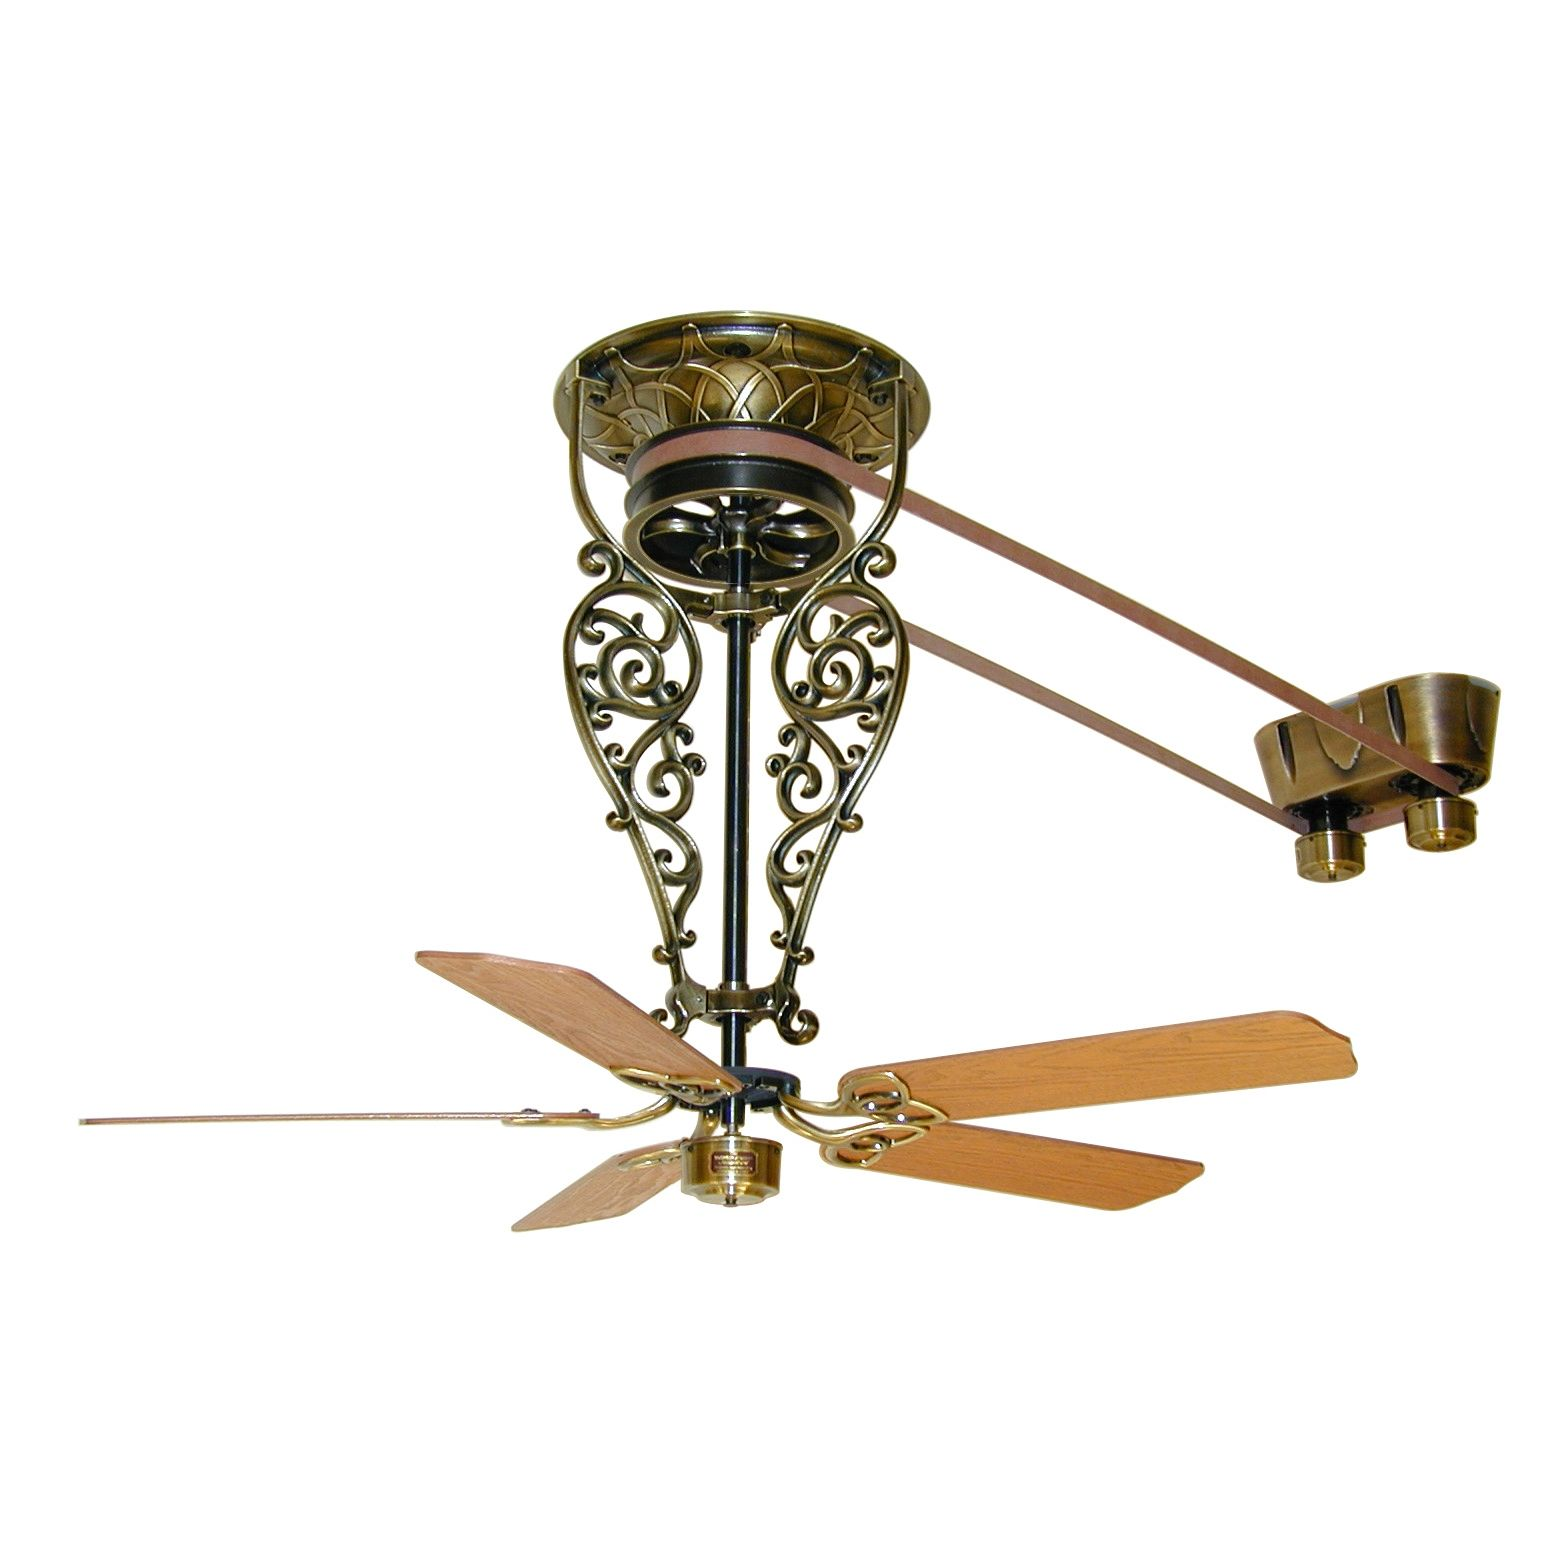 Vintage ceiling fans with lights - Fanimation Bourbon Street Collection Antique Reproduction Belt Drive Ceiling Fans Brand Lighting Discount Lighting Call Brand Lighting Sales To Ask For